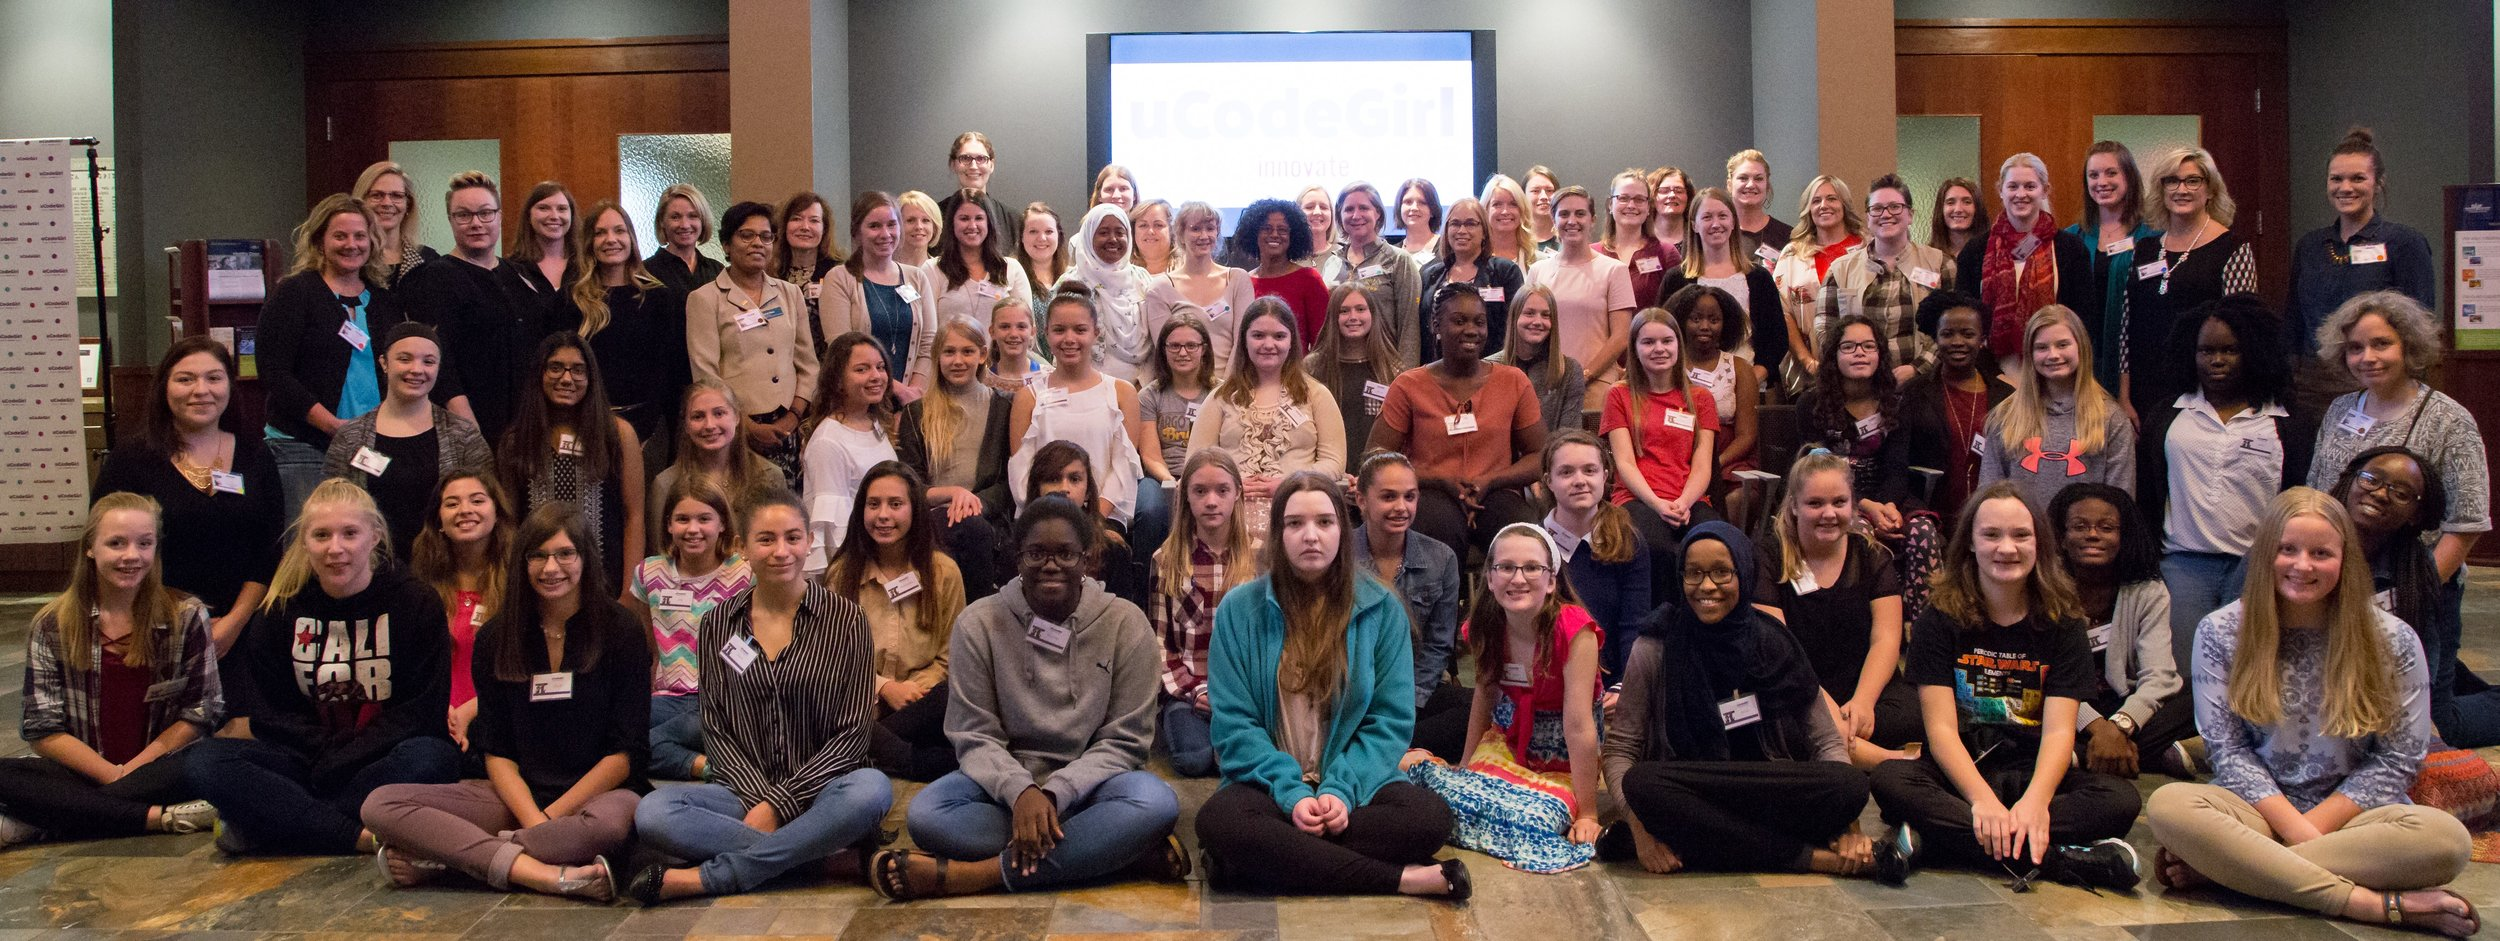 uCodeGirl-STEM-Mentorship-october2017.jpg